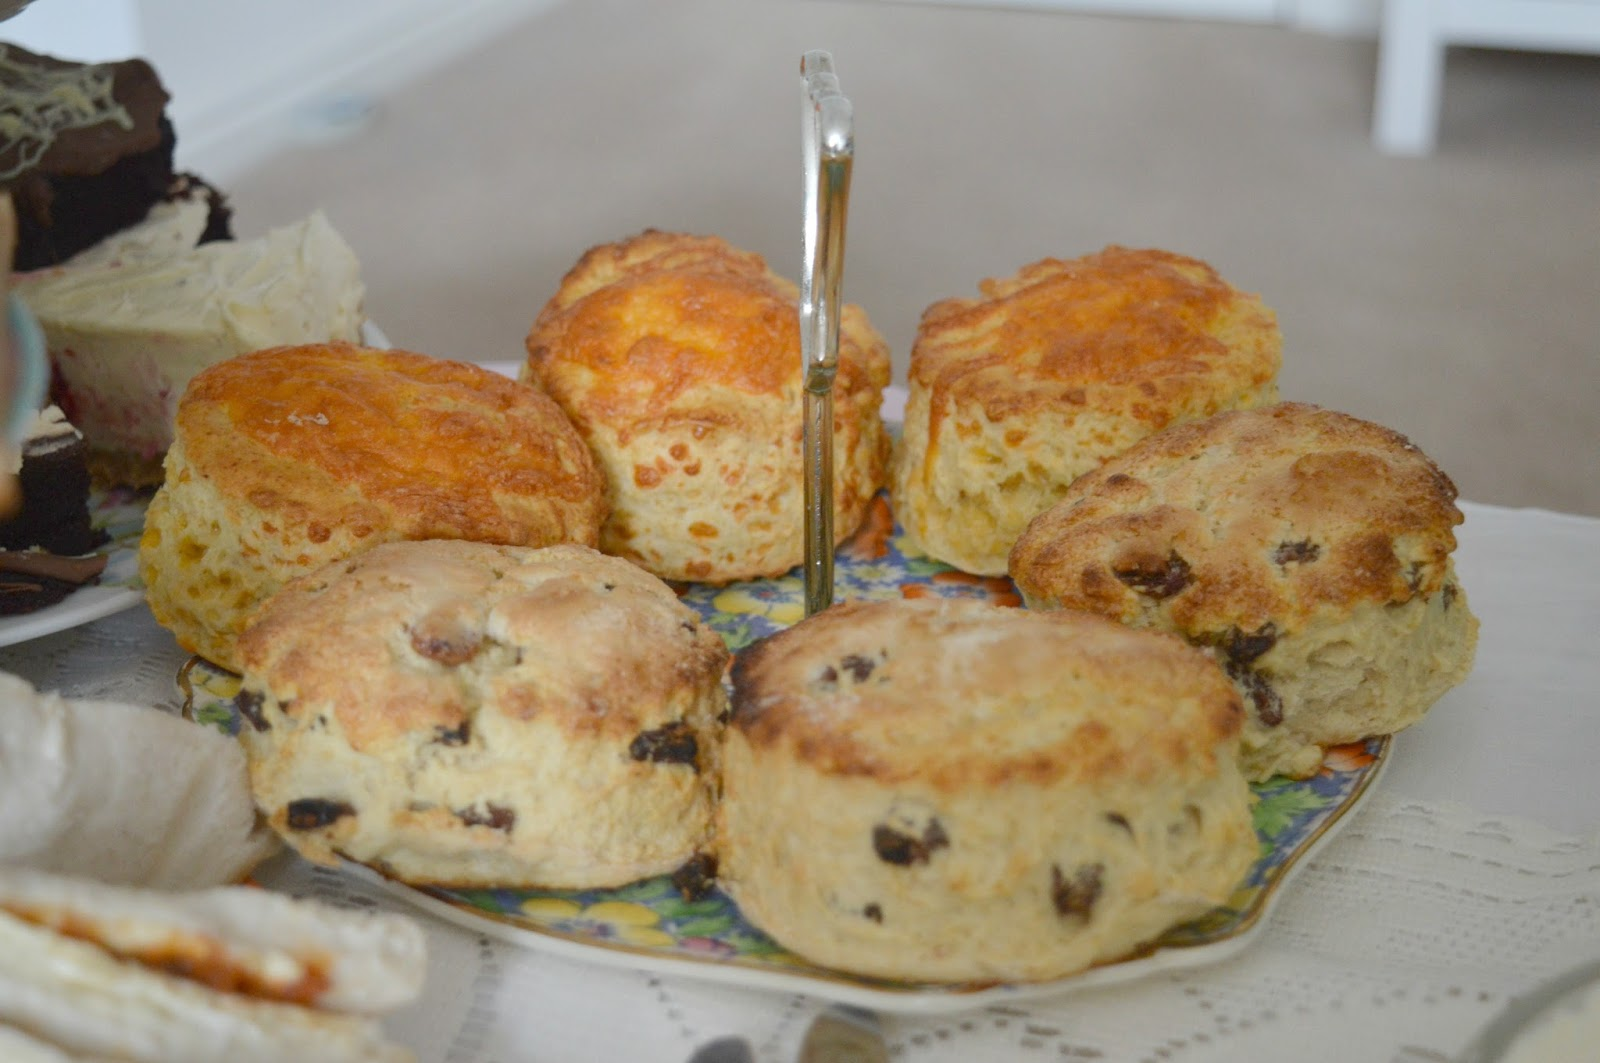 Mrs Dellow's Delights North East Afternoon Tea Delivery Service - Scones